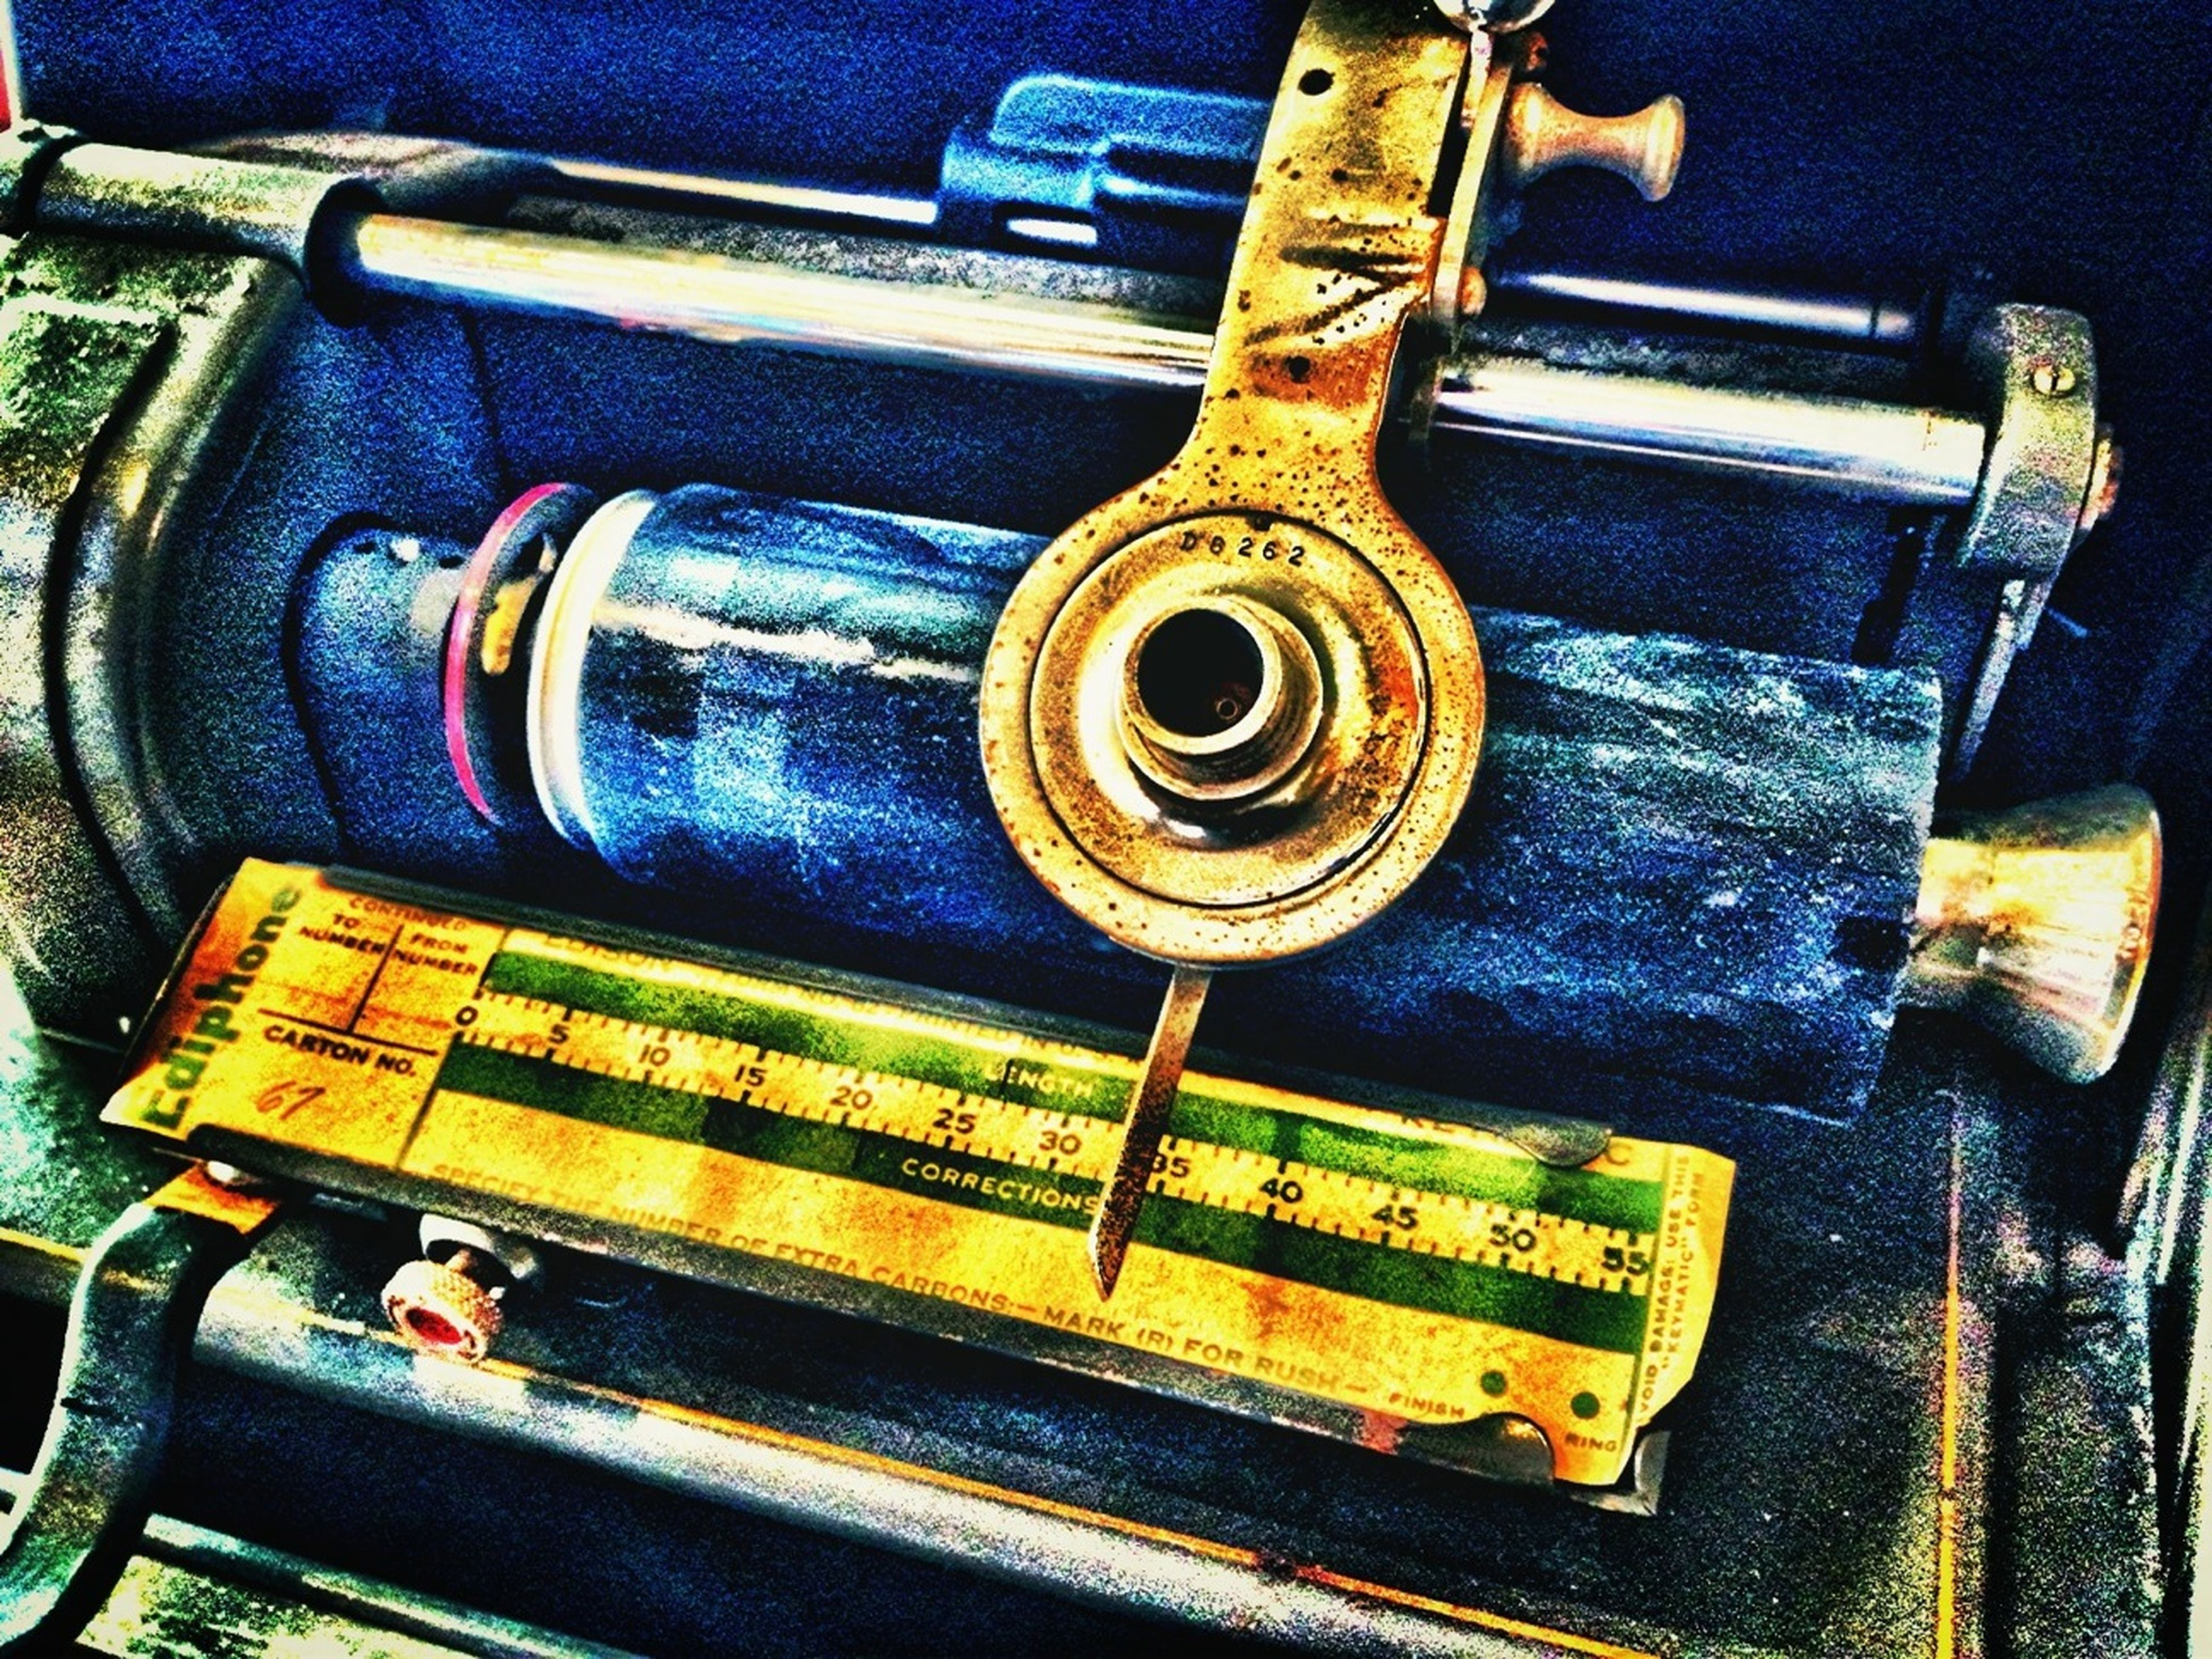 indoors, metal, high angle view, close-up, still life, yellow, old-fashioned, machinery, work tool, equipment, no people, old, retro styled, wood - material, metallic, music, industry, technology, machine part, transportation